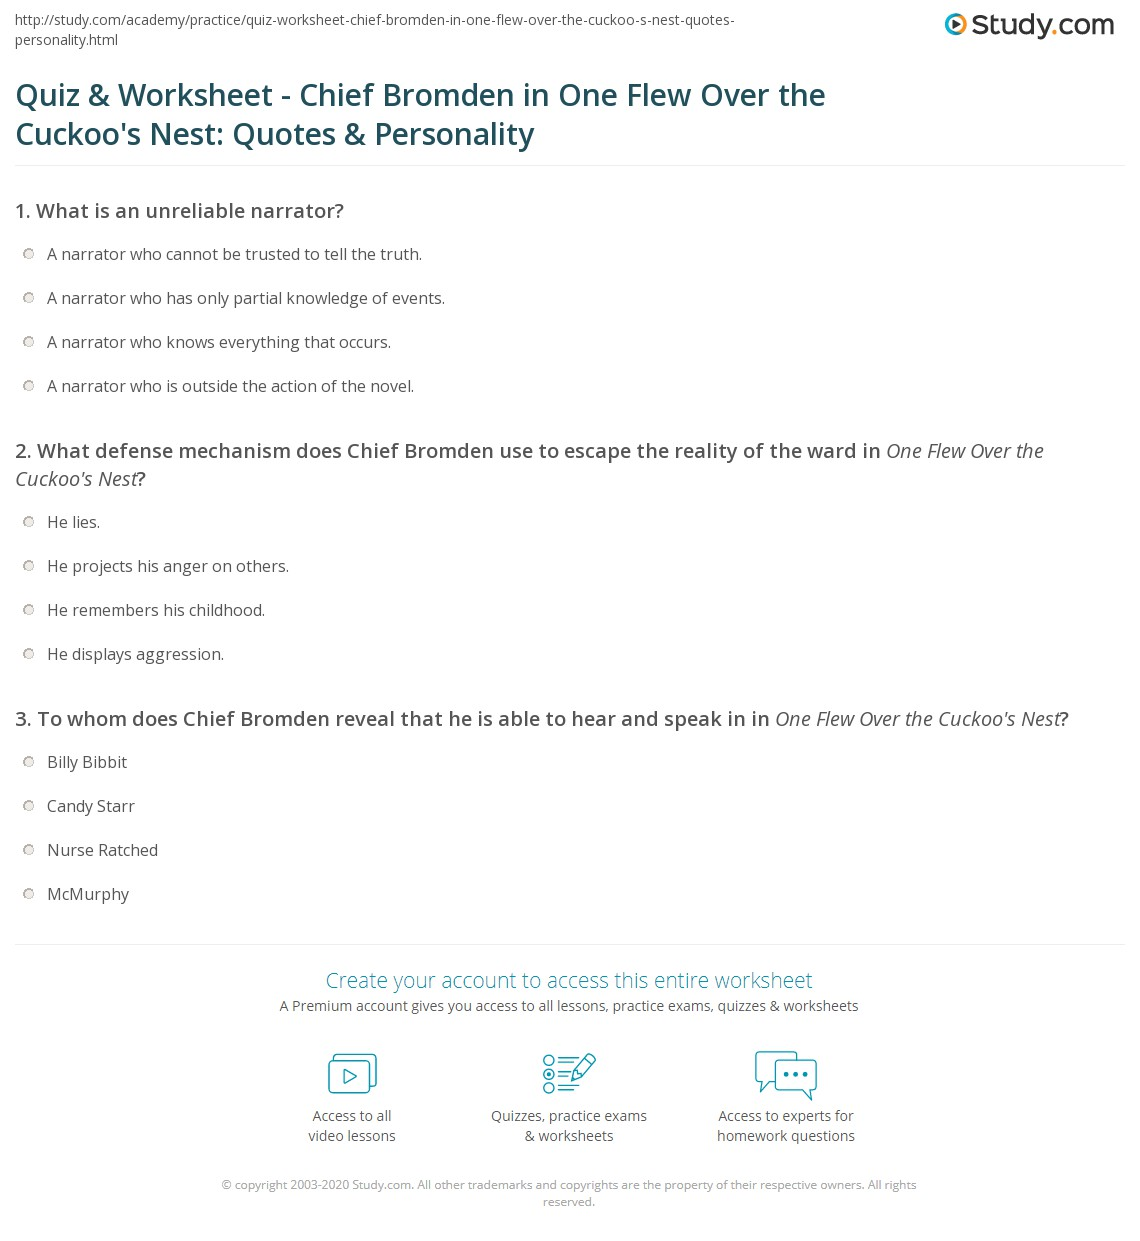 quiz worksheet chief bromden in one flew over the cuckoo s print chief bromden in one flew over the cuckoo s nest quotes personality worksheet